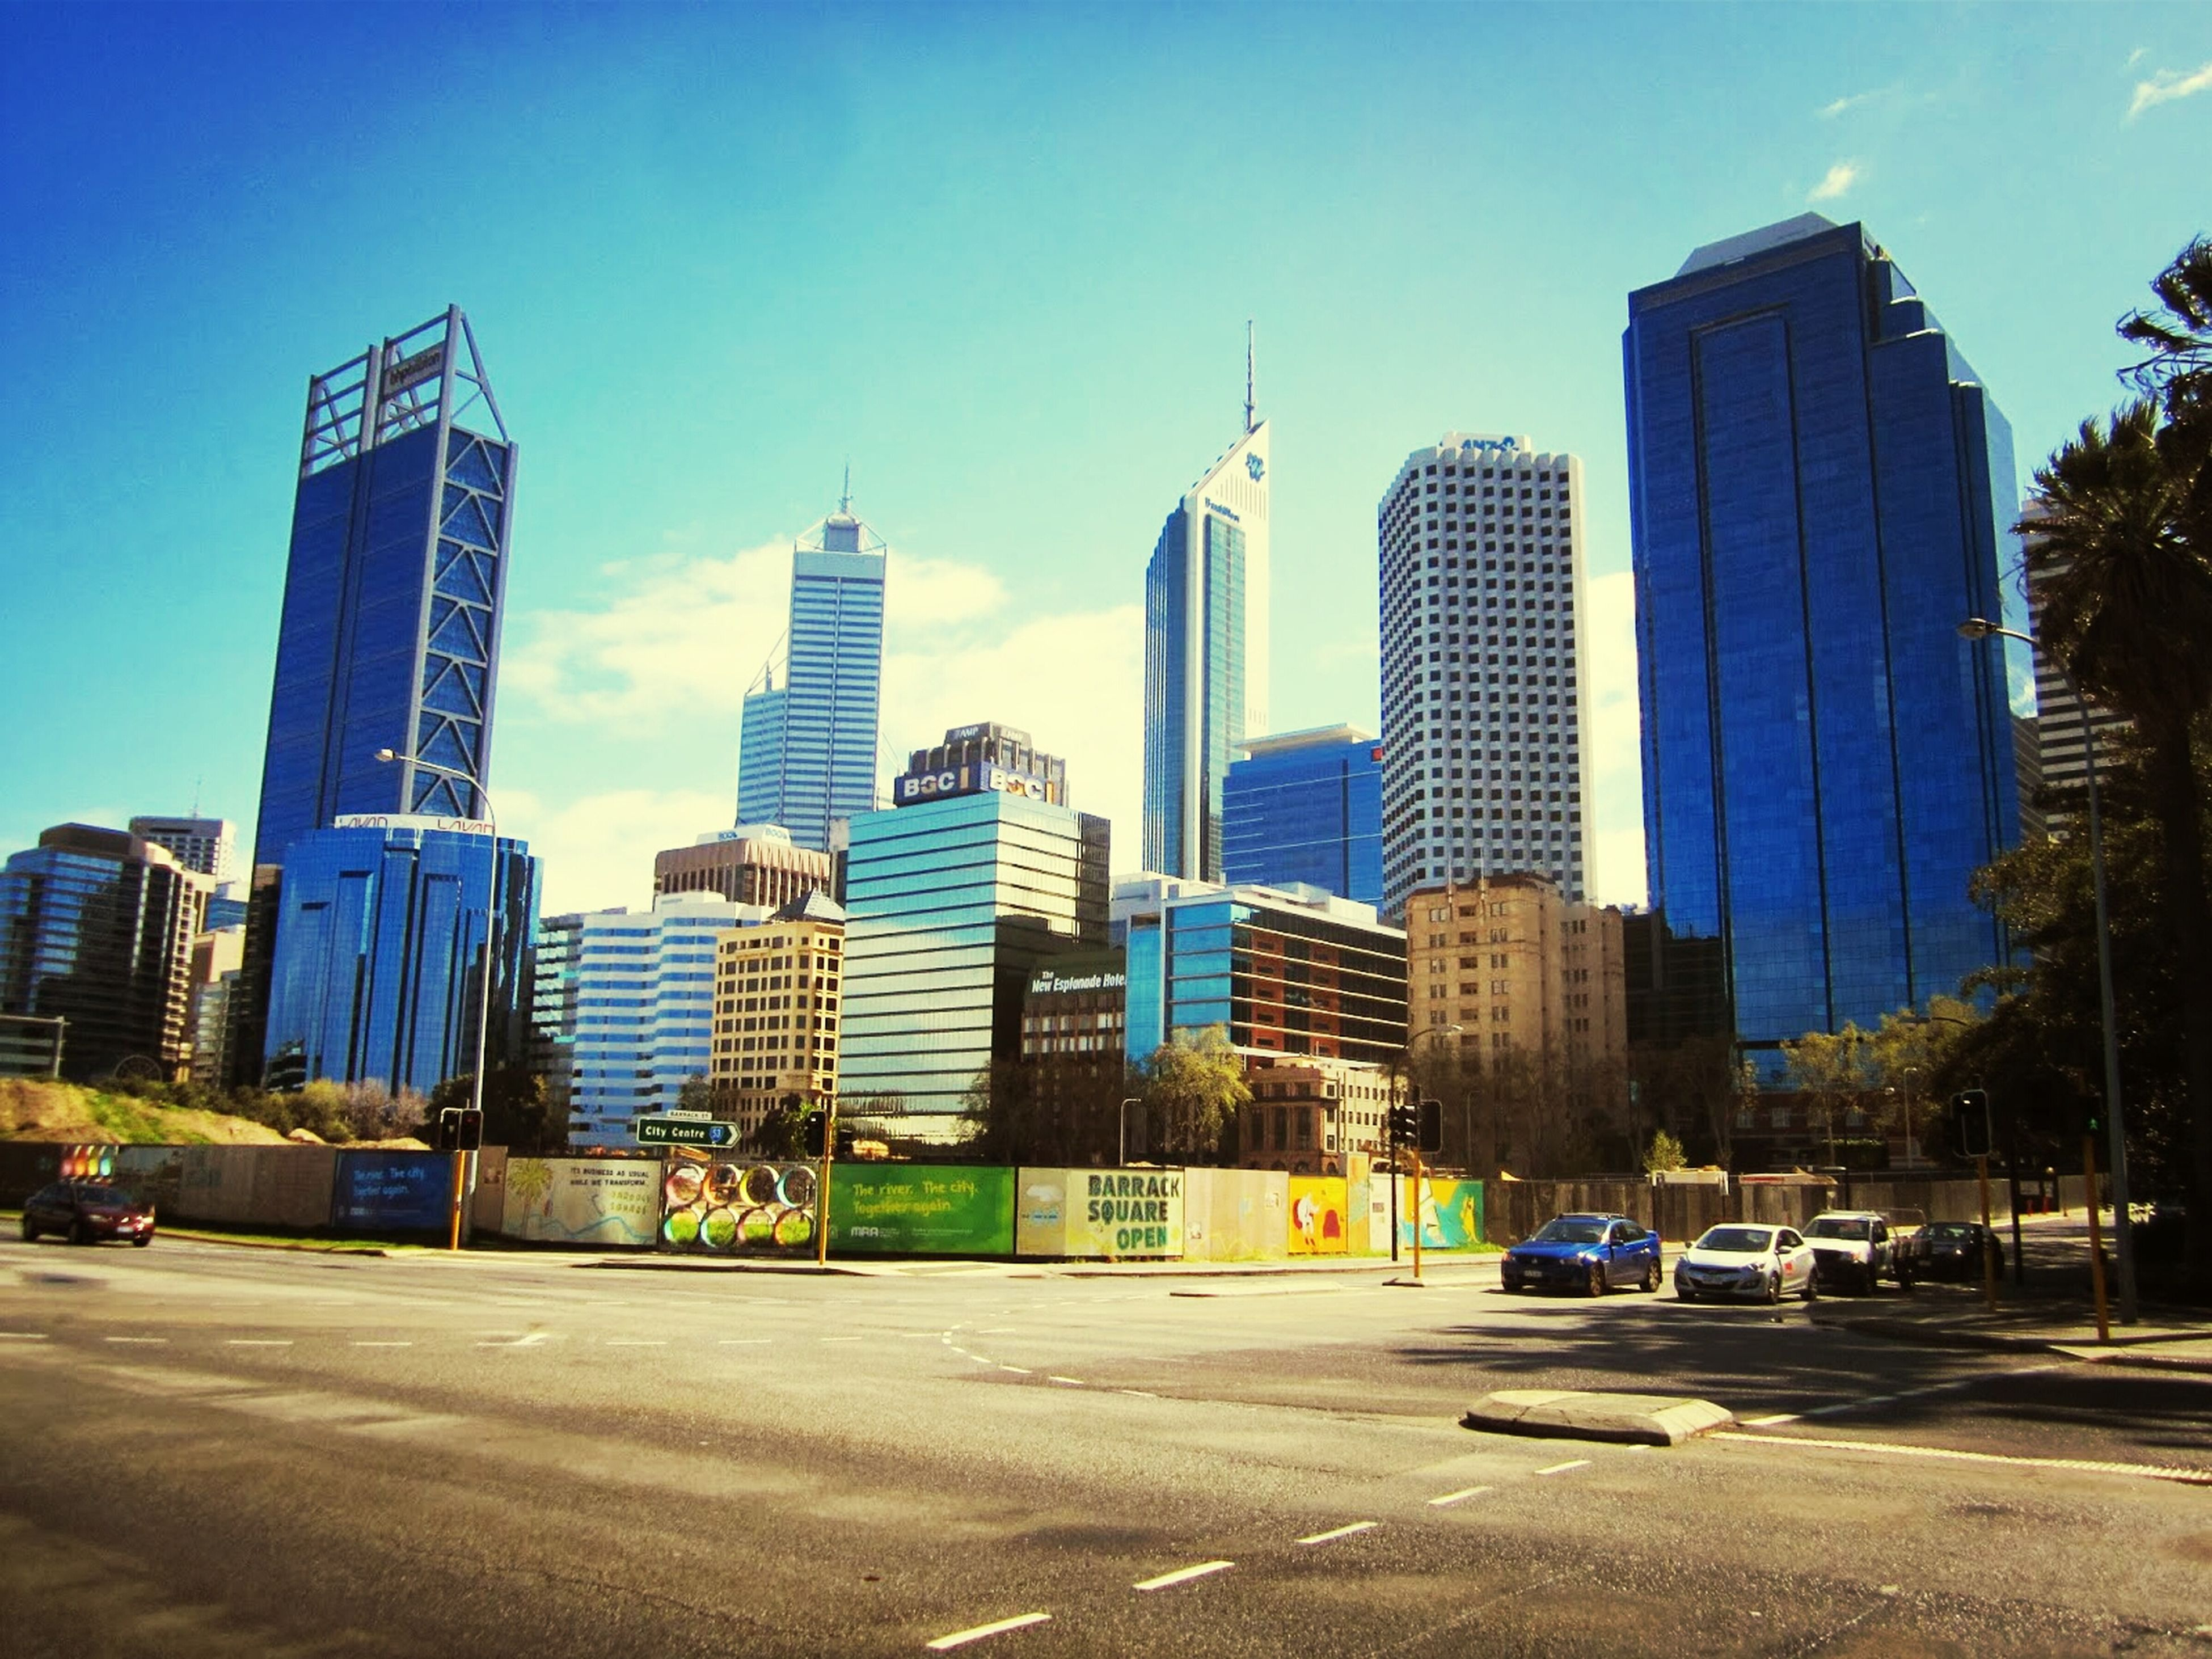 building exterior, architecture, city, built structure, skyscraper, office building, modern, tall - high, tower, blue, street, road, cityscape, urban skyline, building, city life, sky, car, financial district, transportation